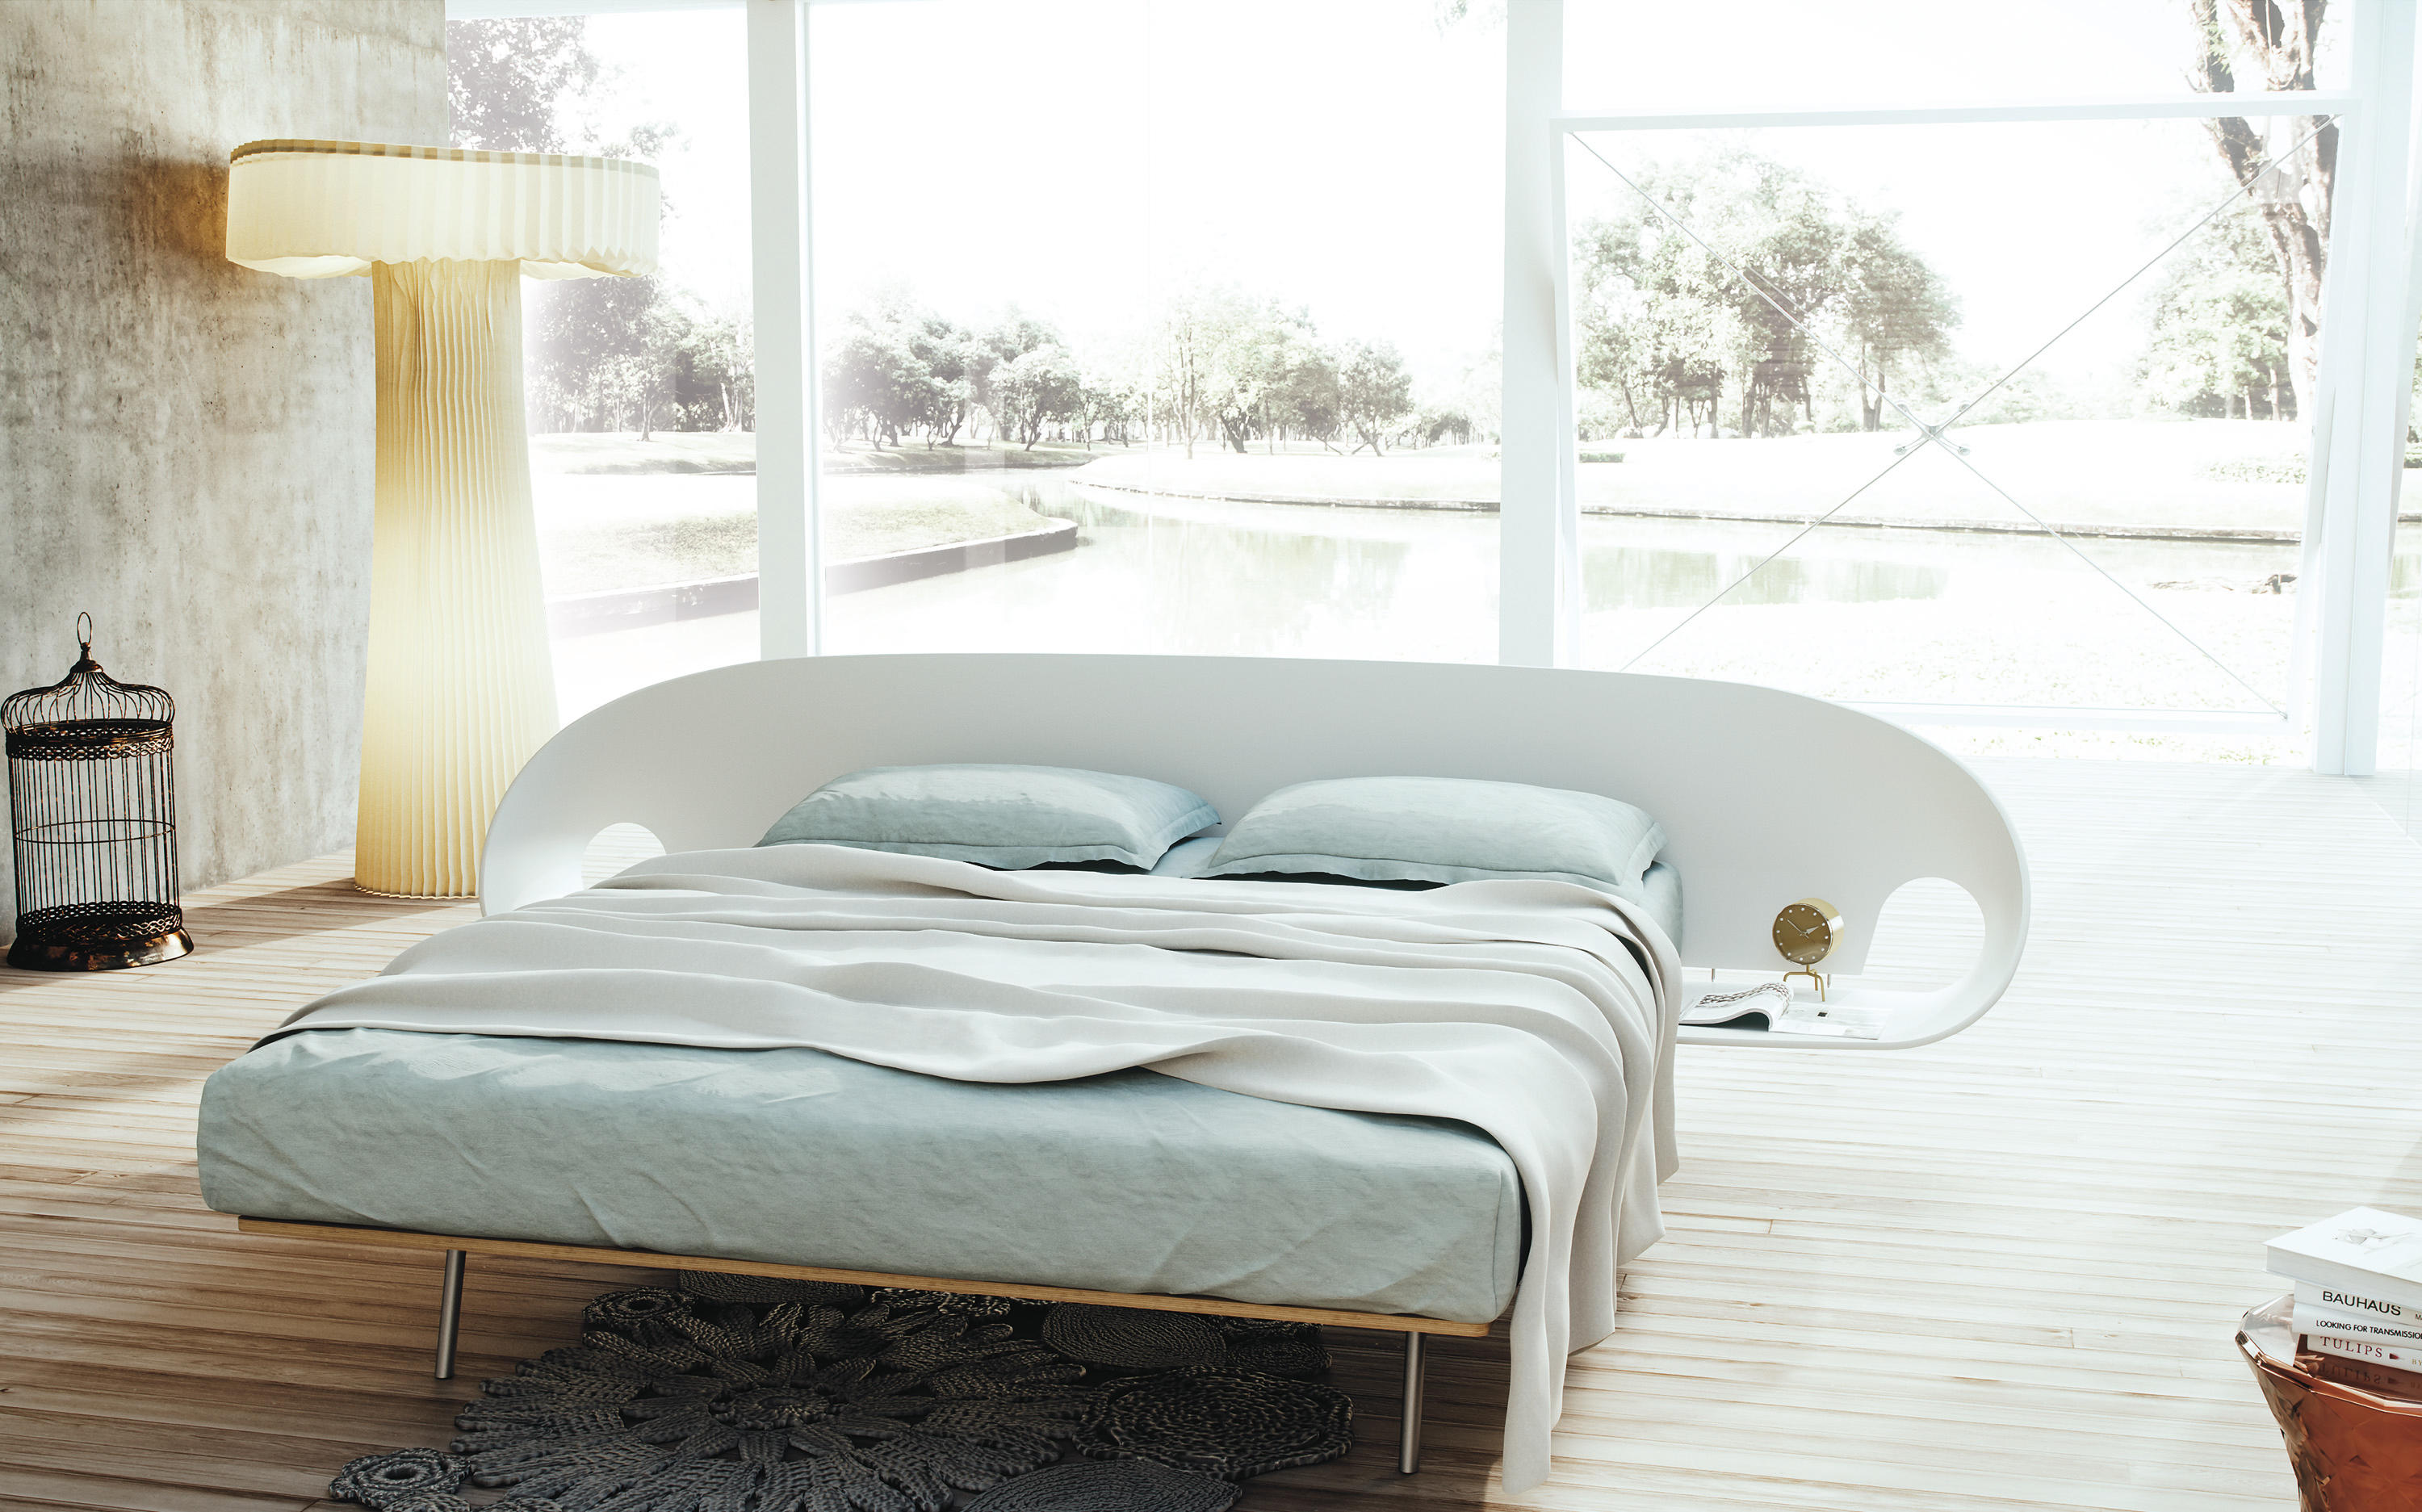 Infolio Bed Double Beds From Caccaro Architonic